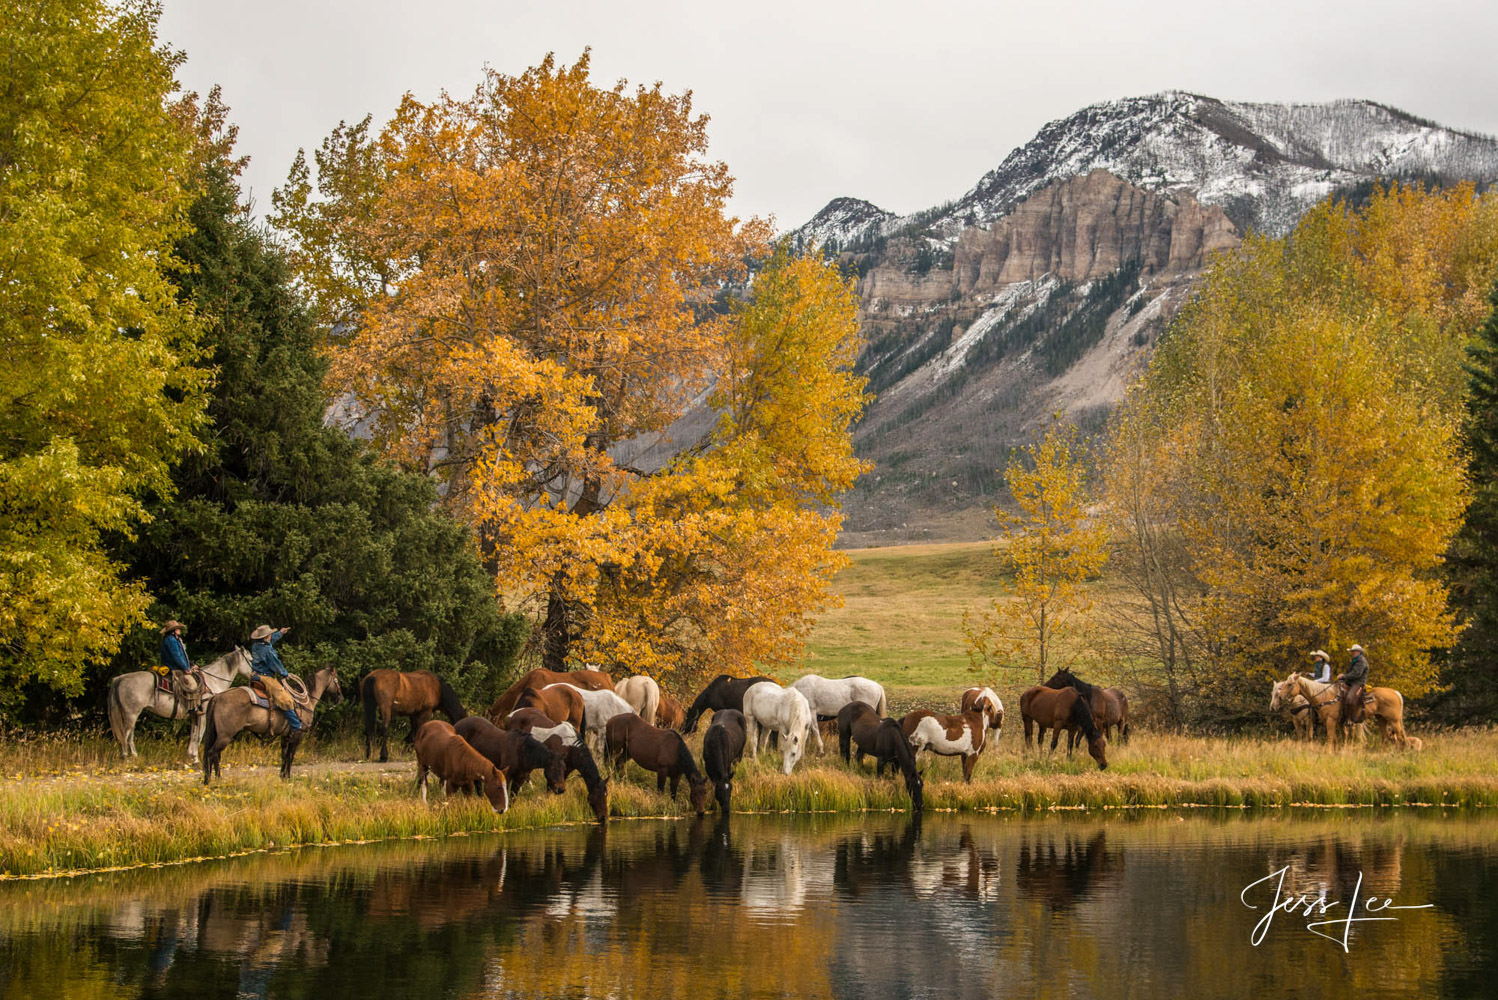 Fine Art Limited Edition Photography of Cowboys, Horses and life in the West. Wyoming horse herd drinking in a golden pond at...